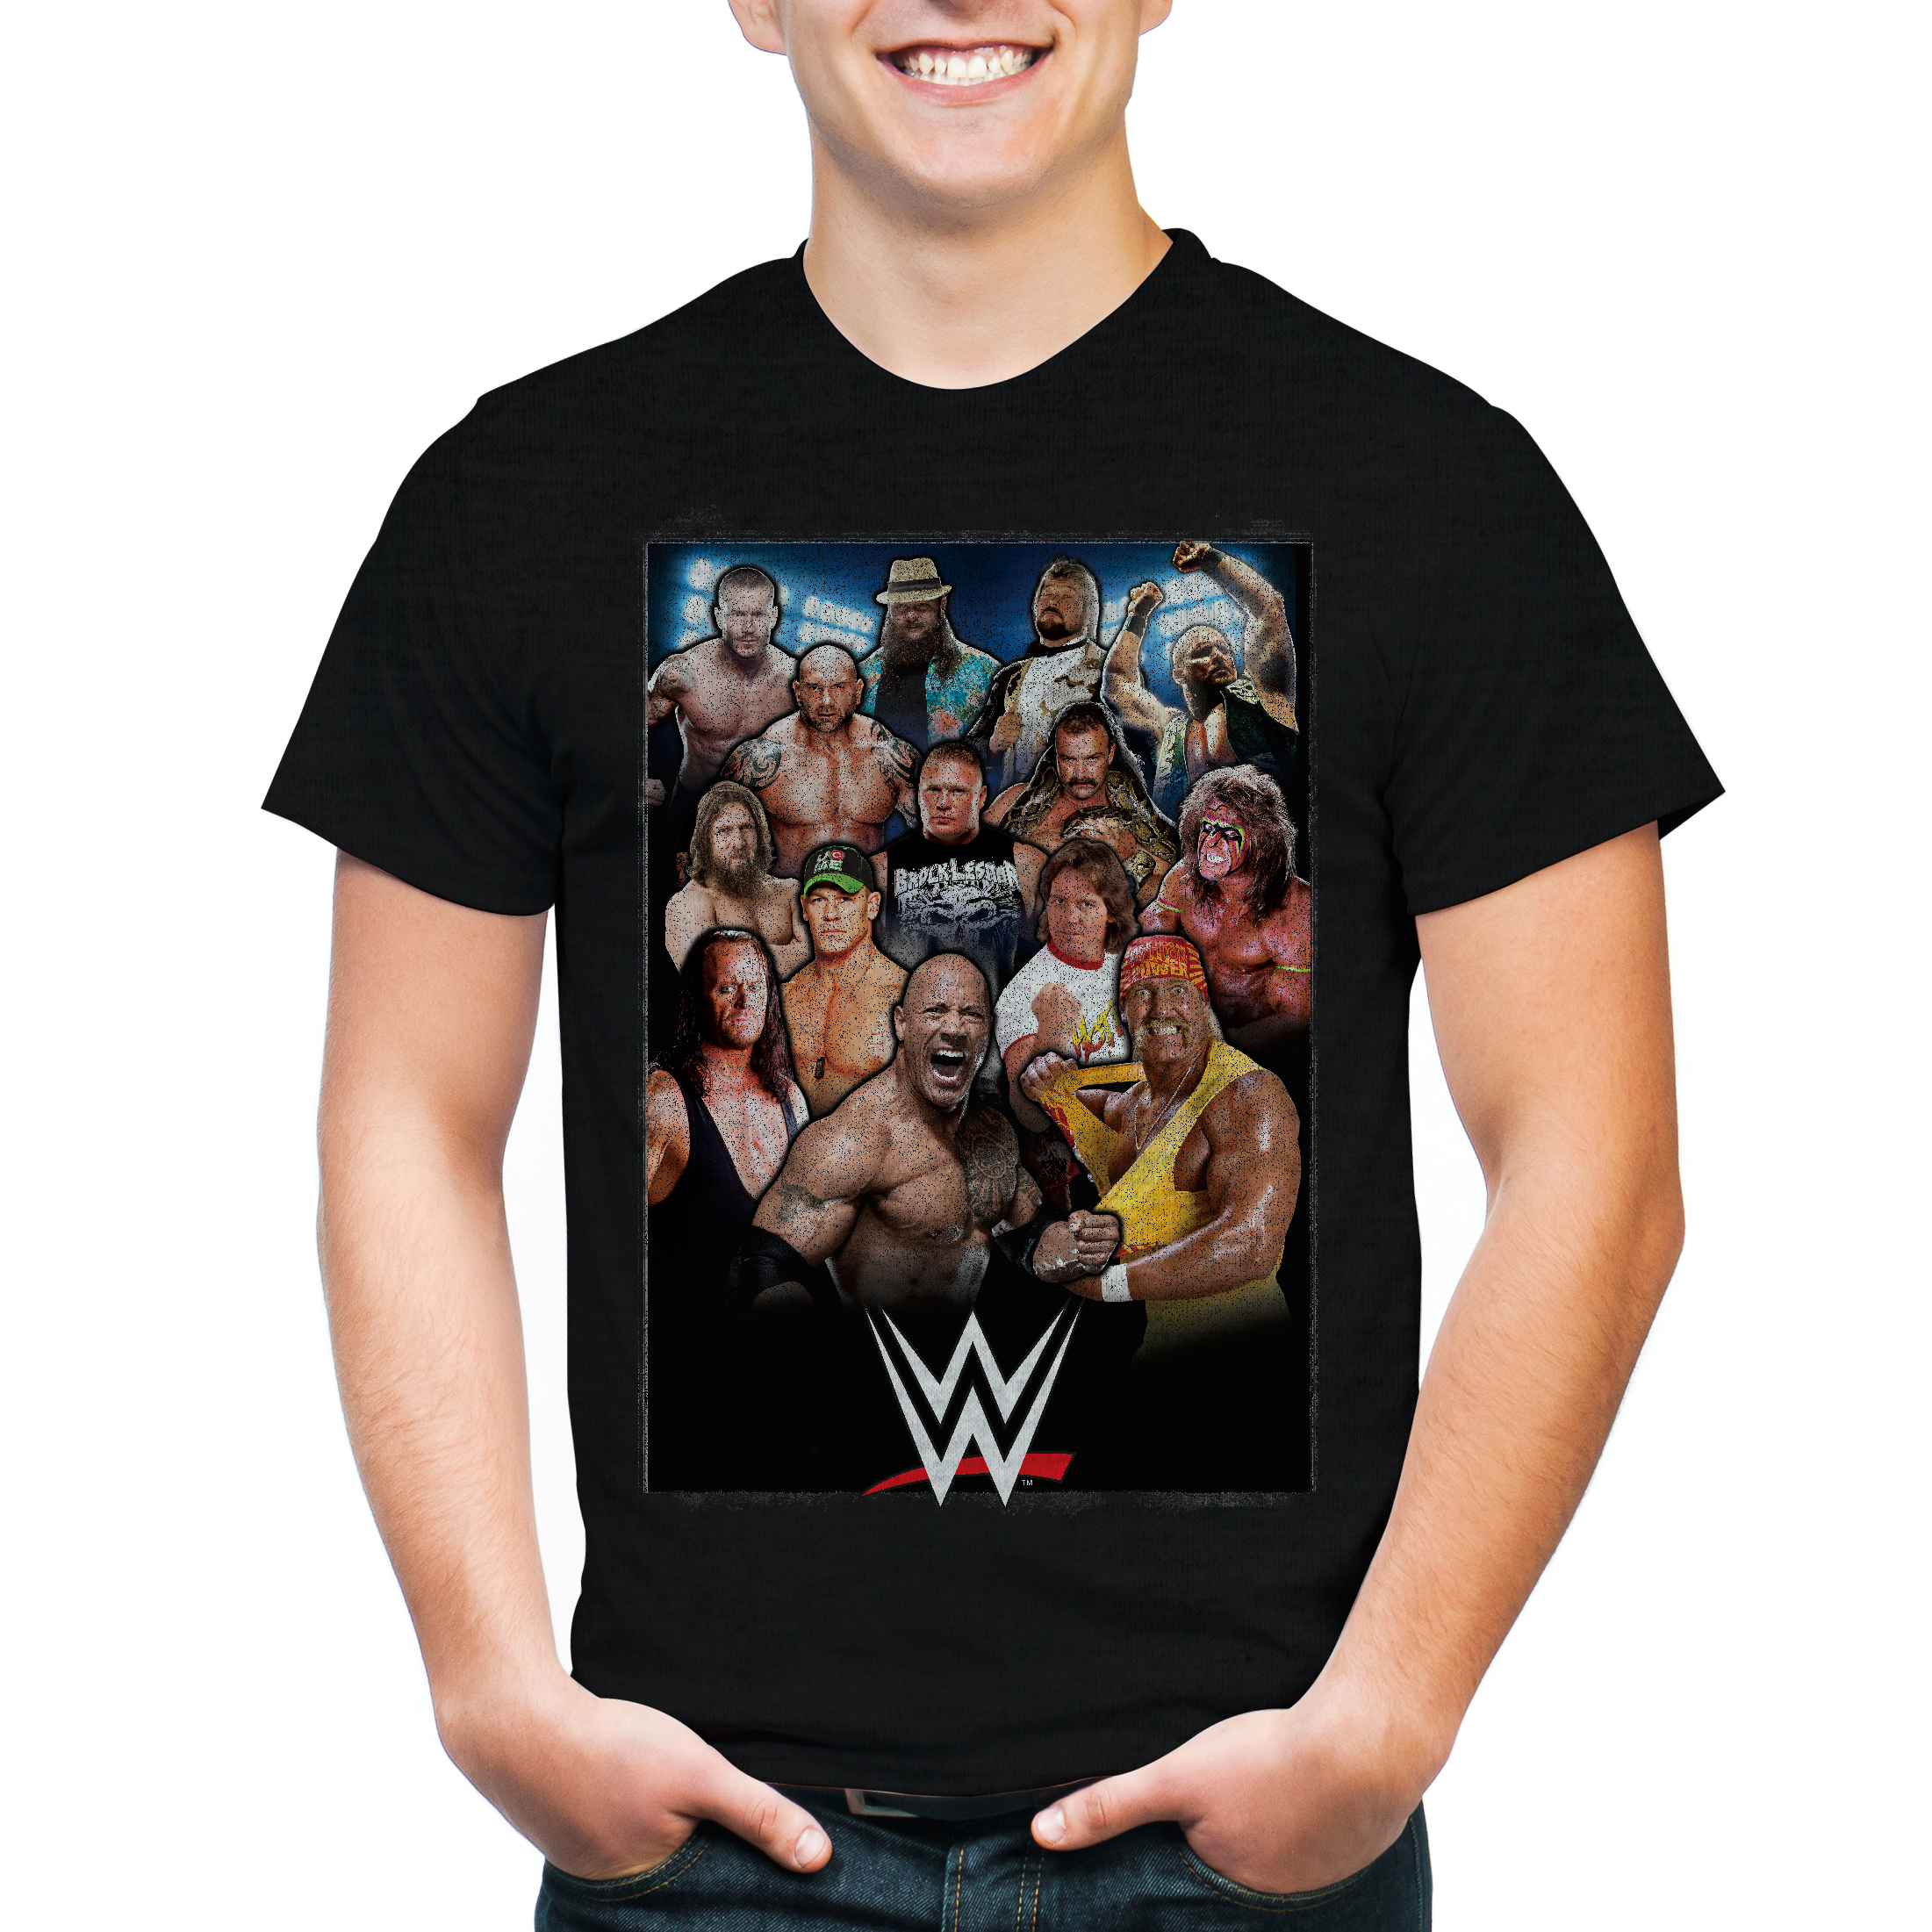 Freeze WWE 3 Eras, Allstar Generations Men's Short Sleeve Graphic Tee T-Shirt PartNumber: 3ZZVA93054312P MfgPartNumber: VWSN991-18